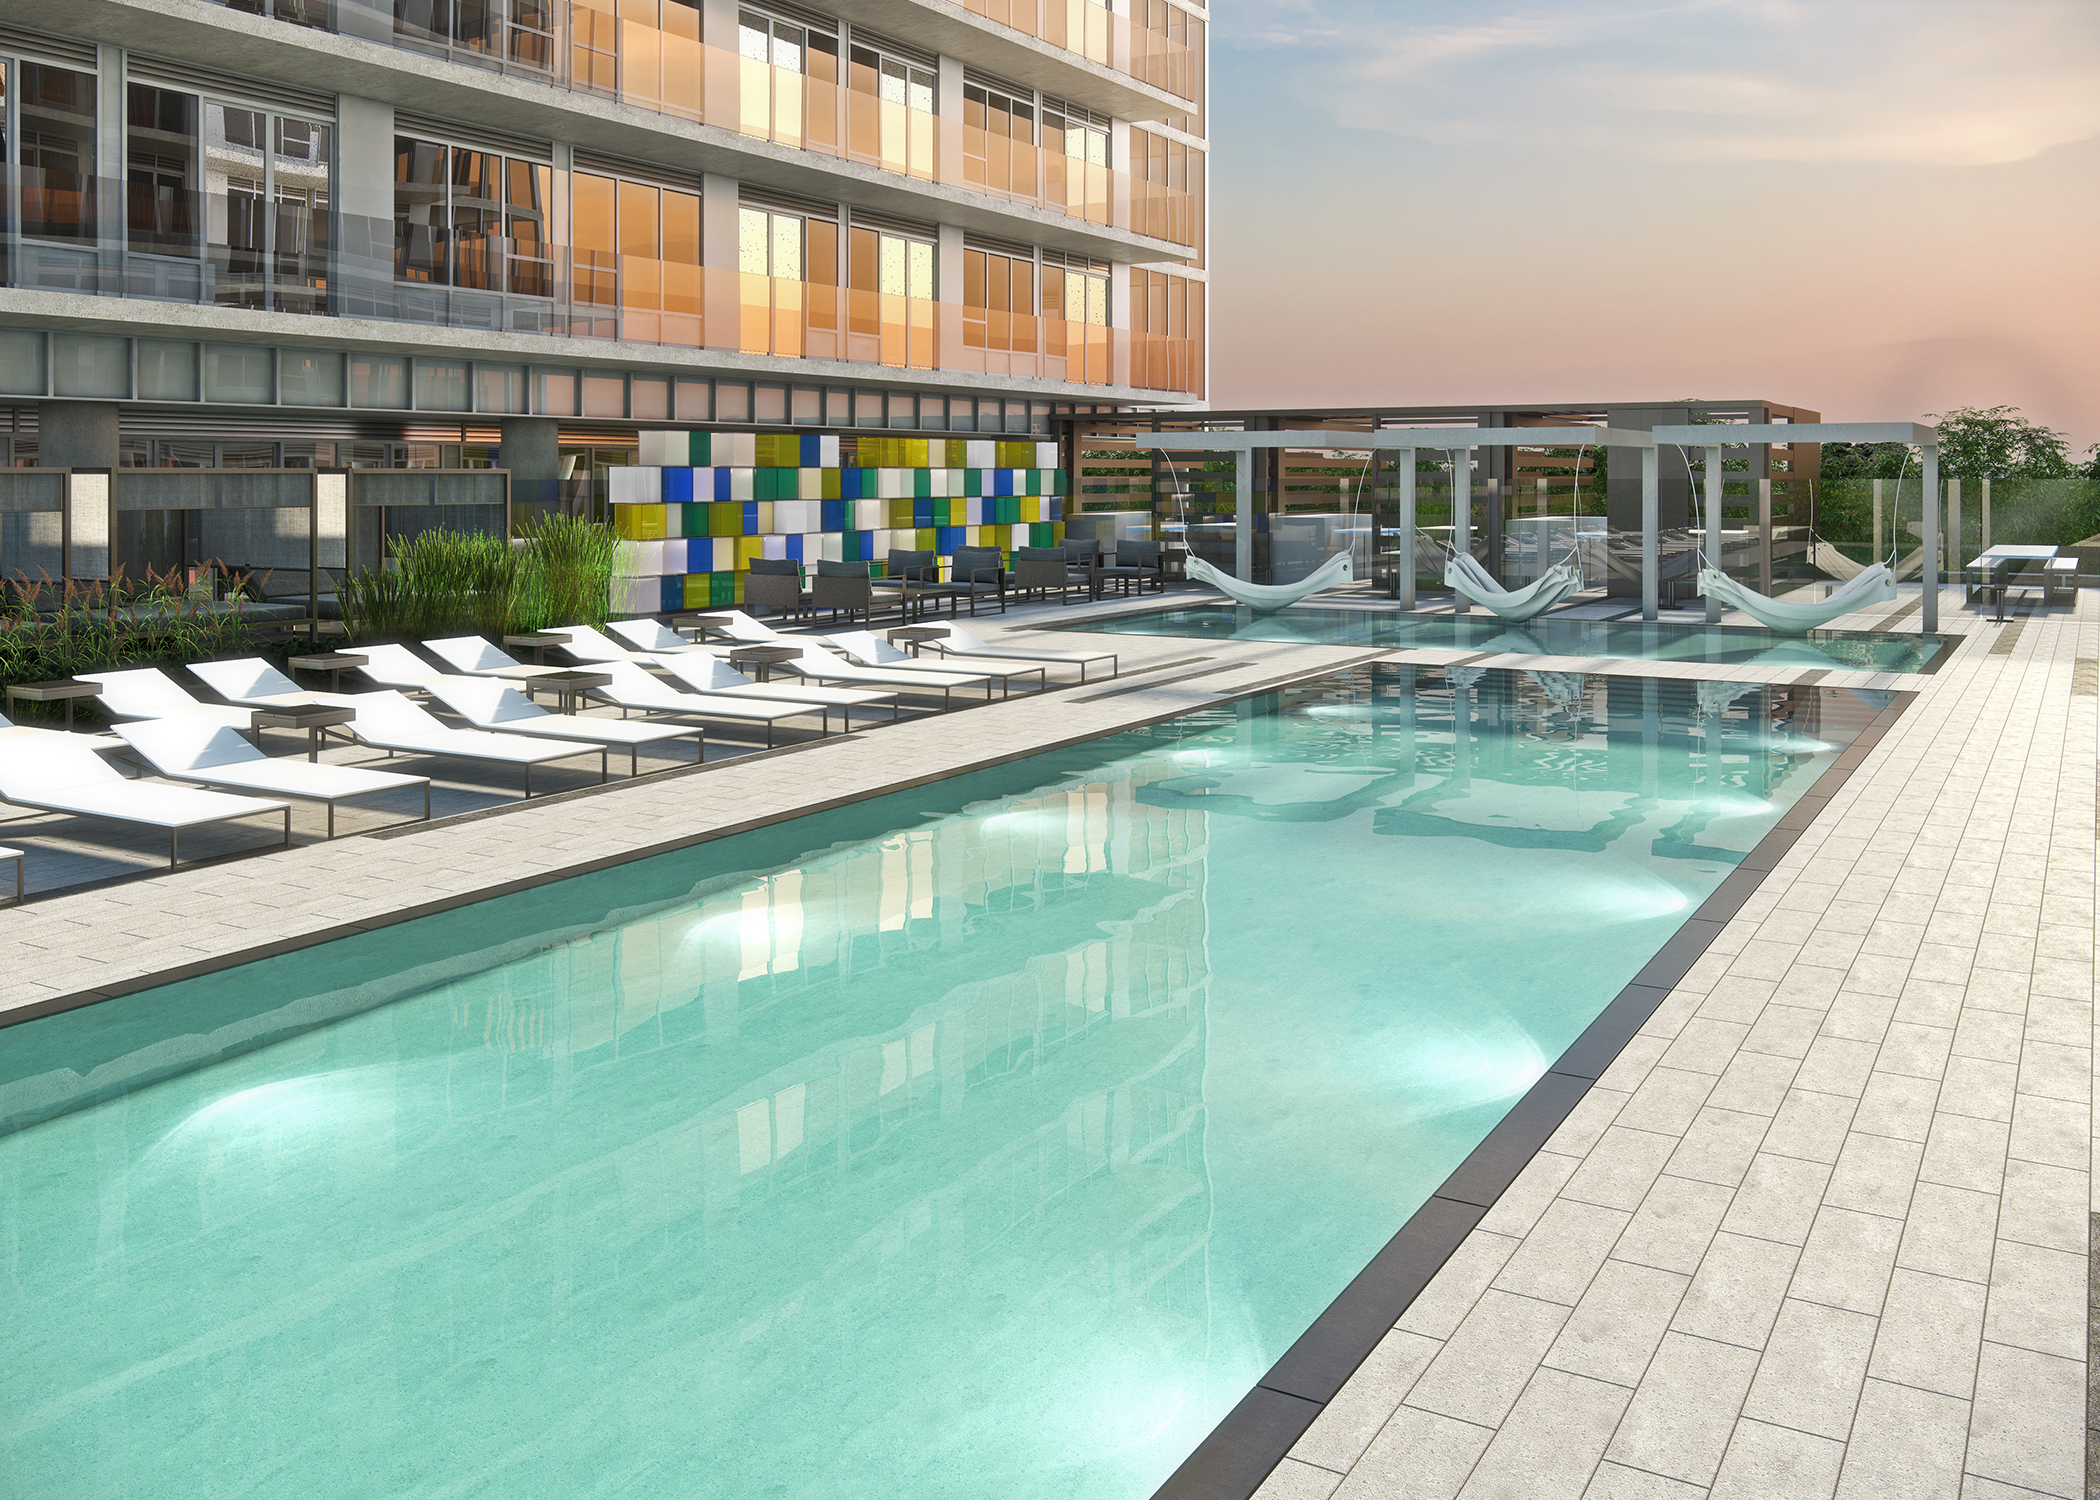 Pemberton-CityLights Pool Rendering